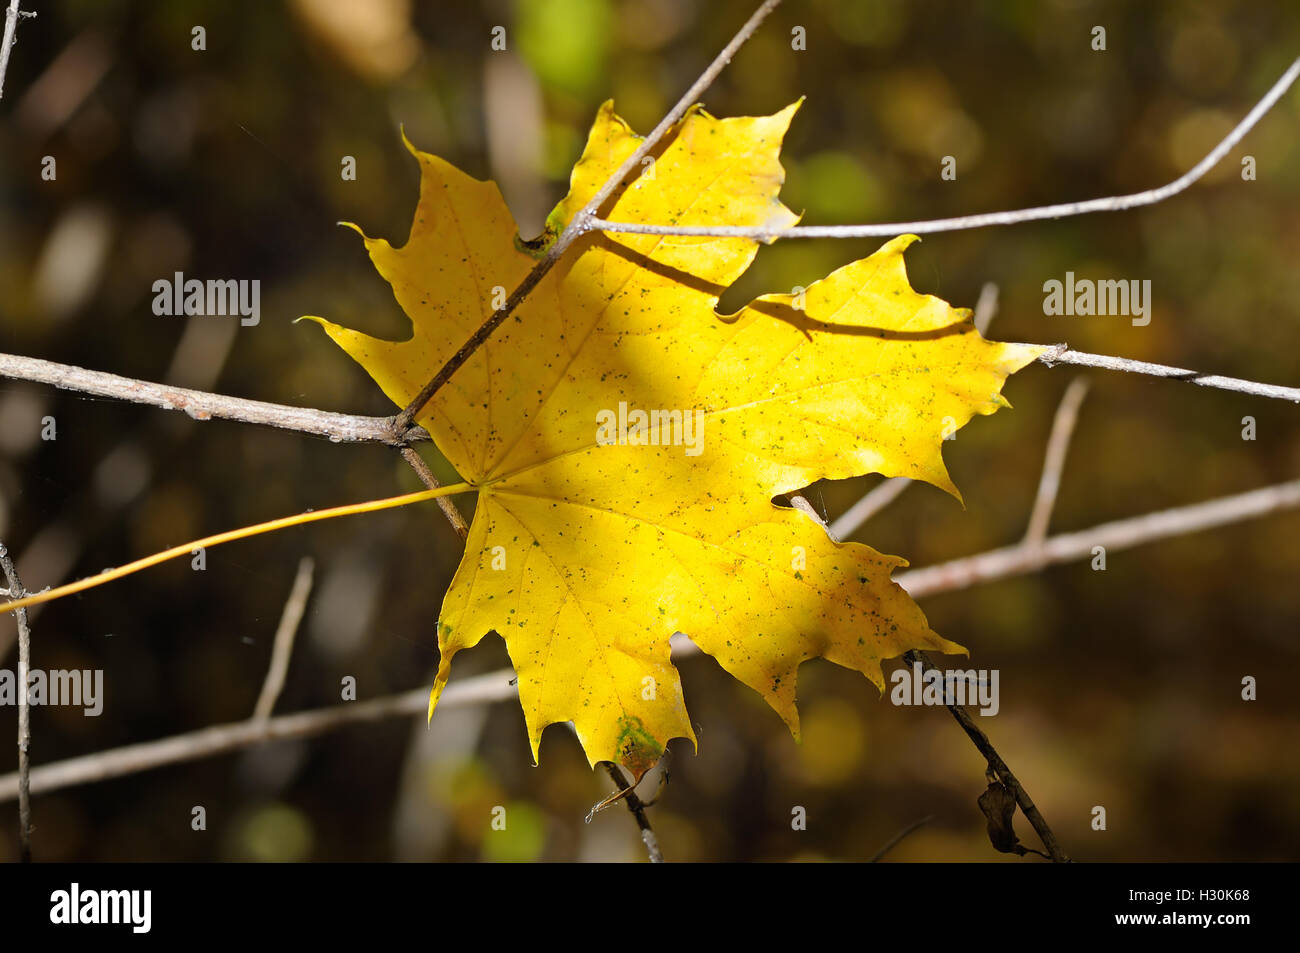 yellow maple leaf on blurred background - Stock Image